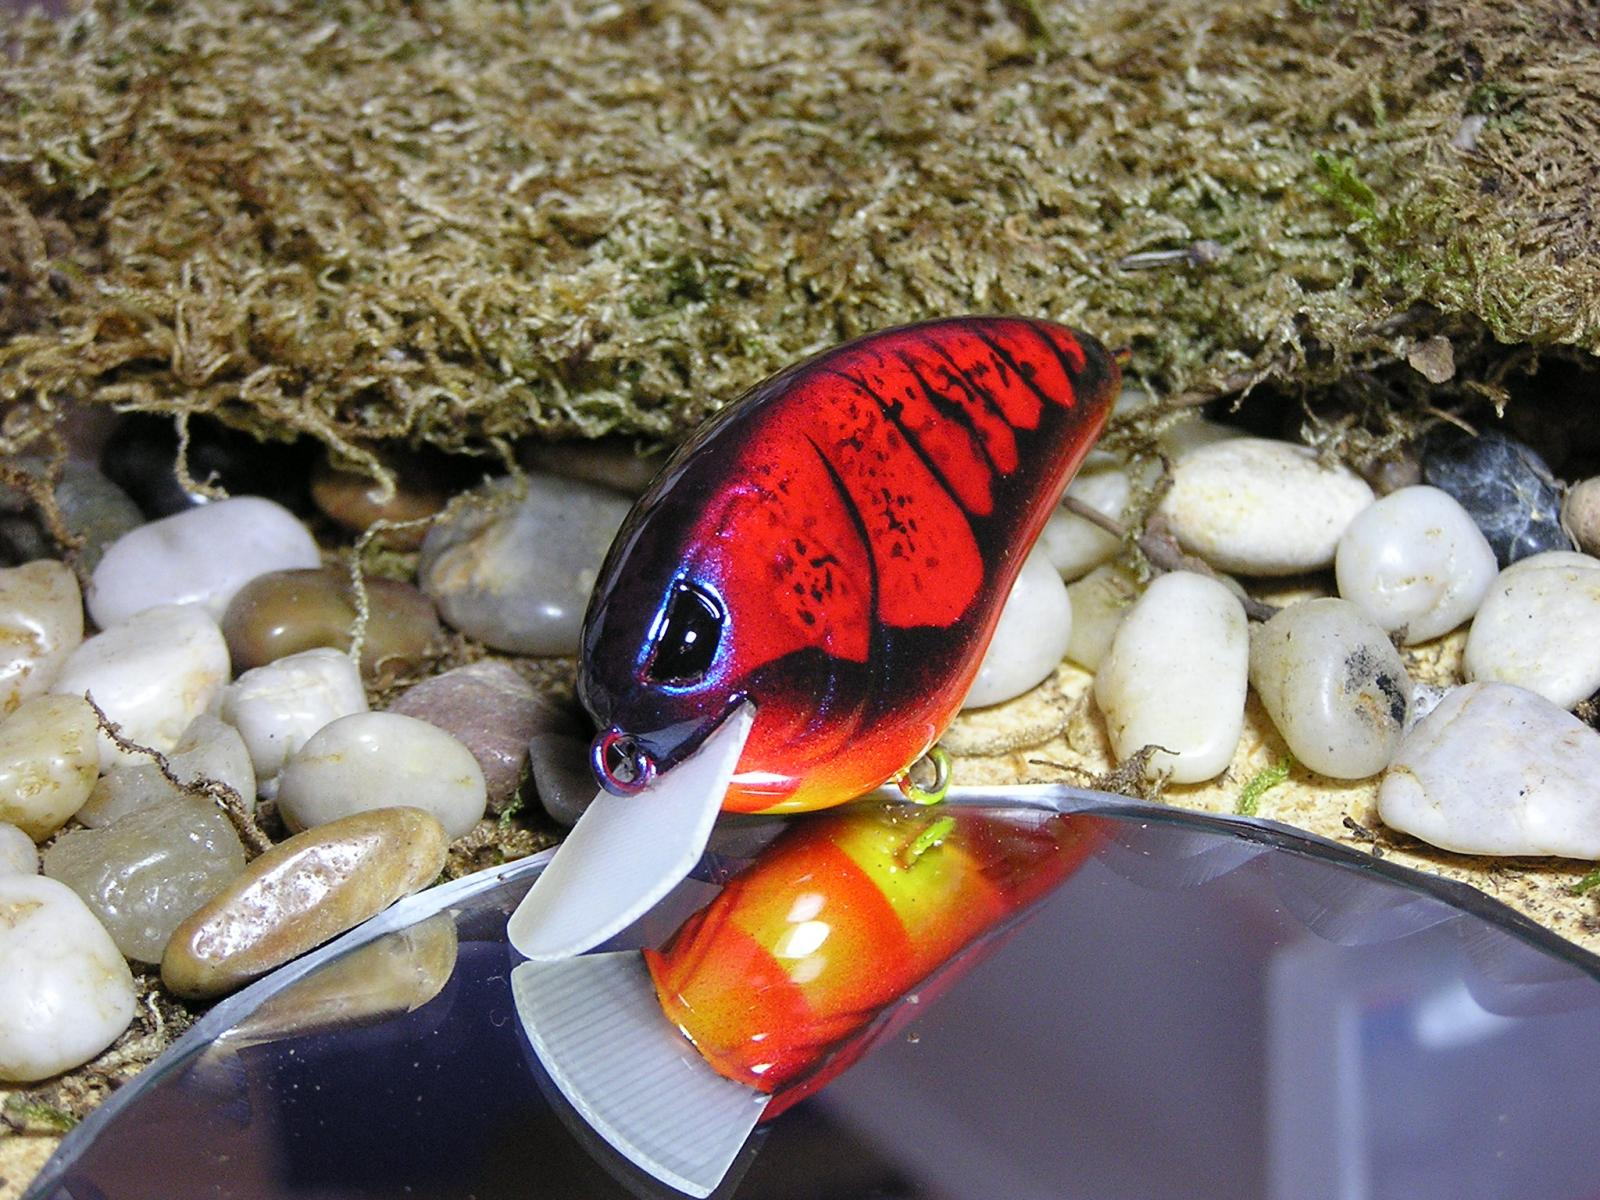 Royal red craw